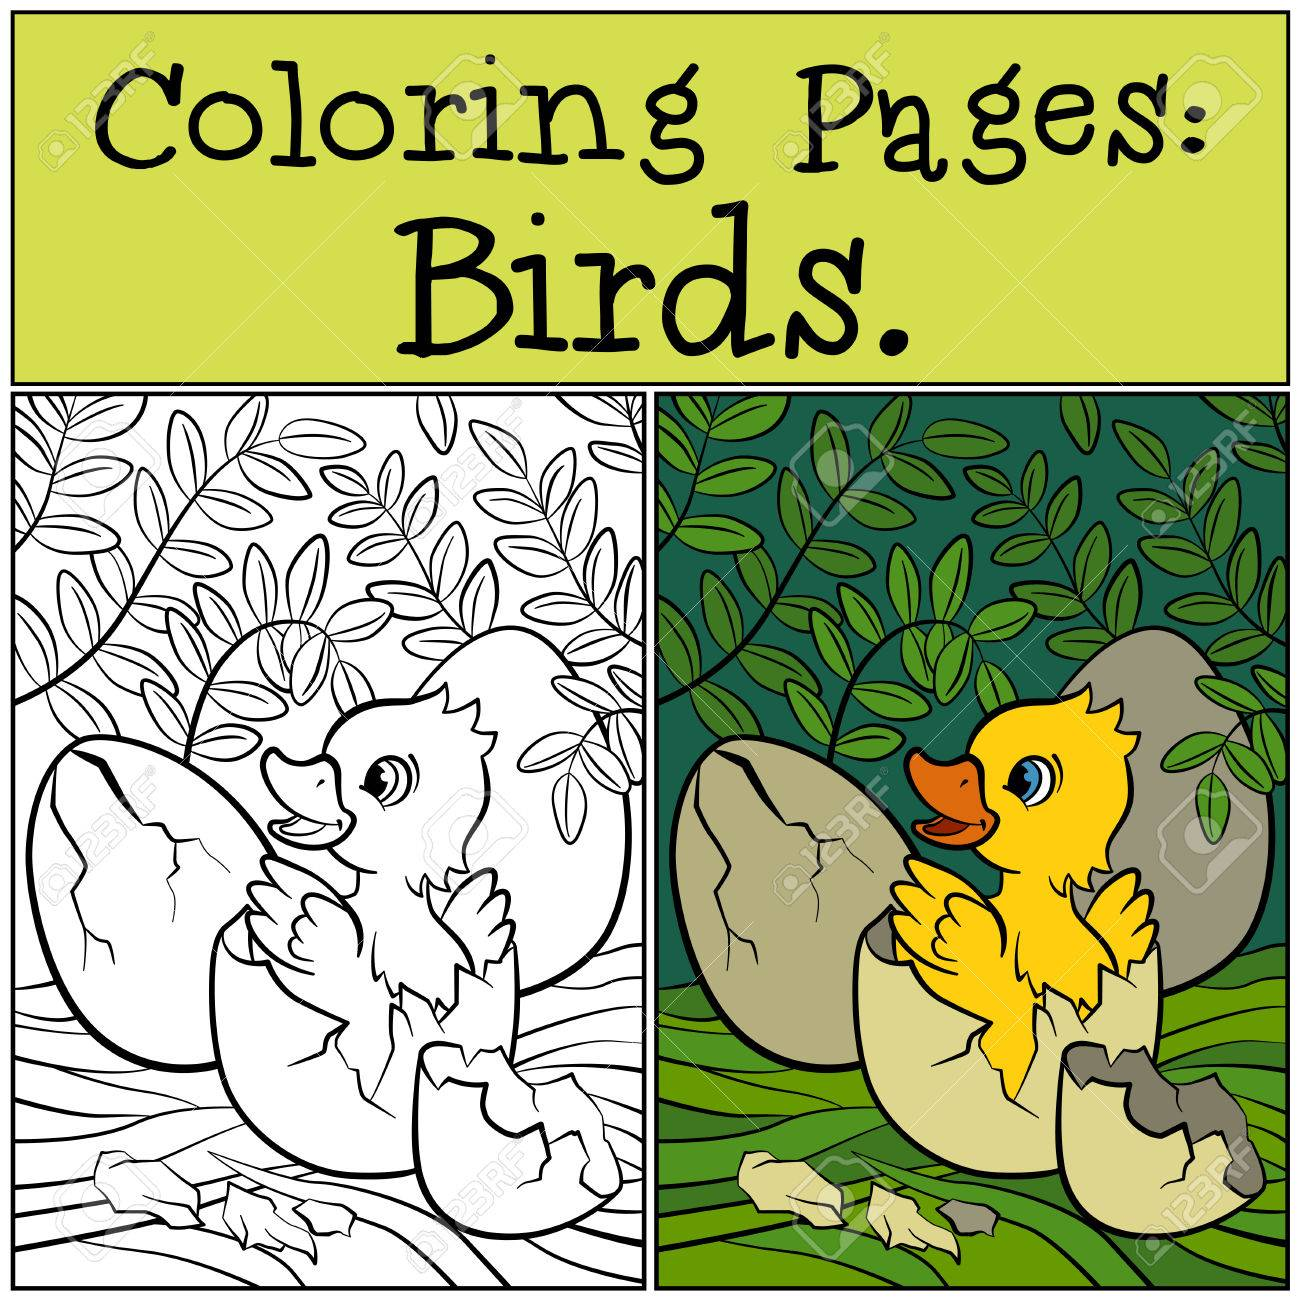 Coloring Pages: Birds. Little Cute Duckling In The Egg. Royalty Free ...